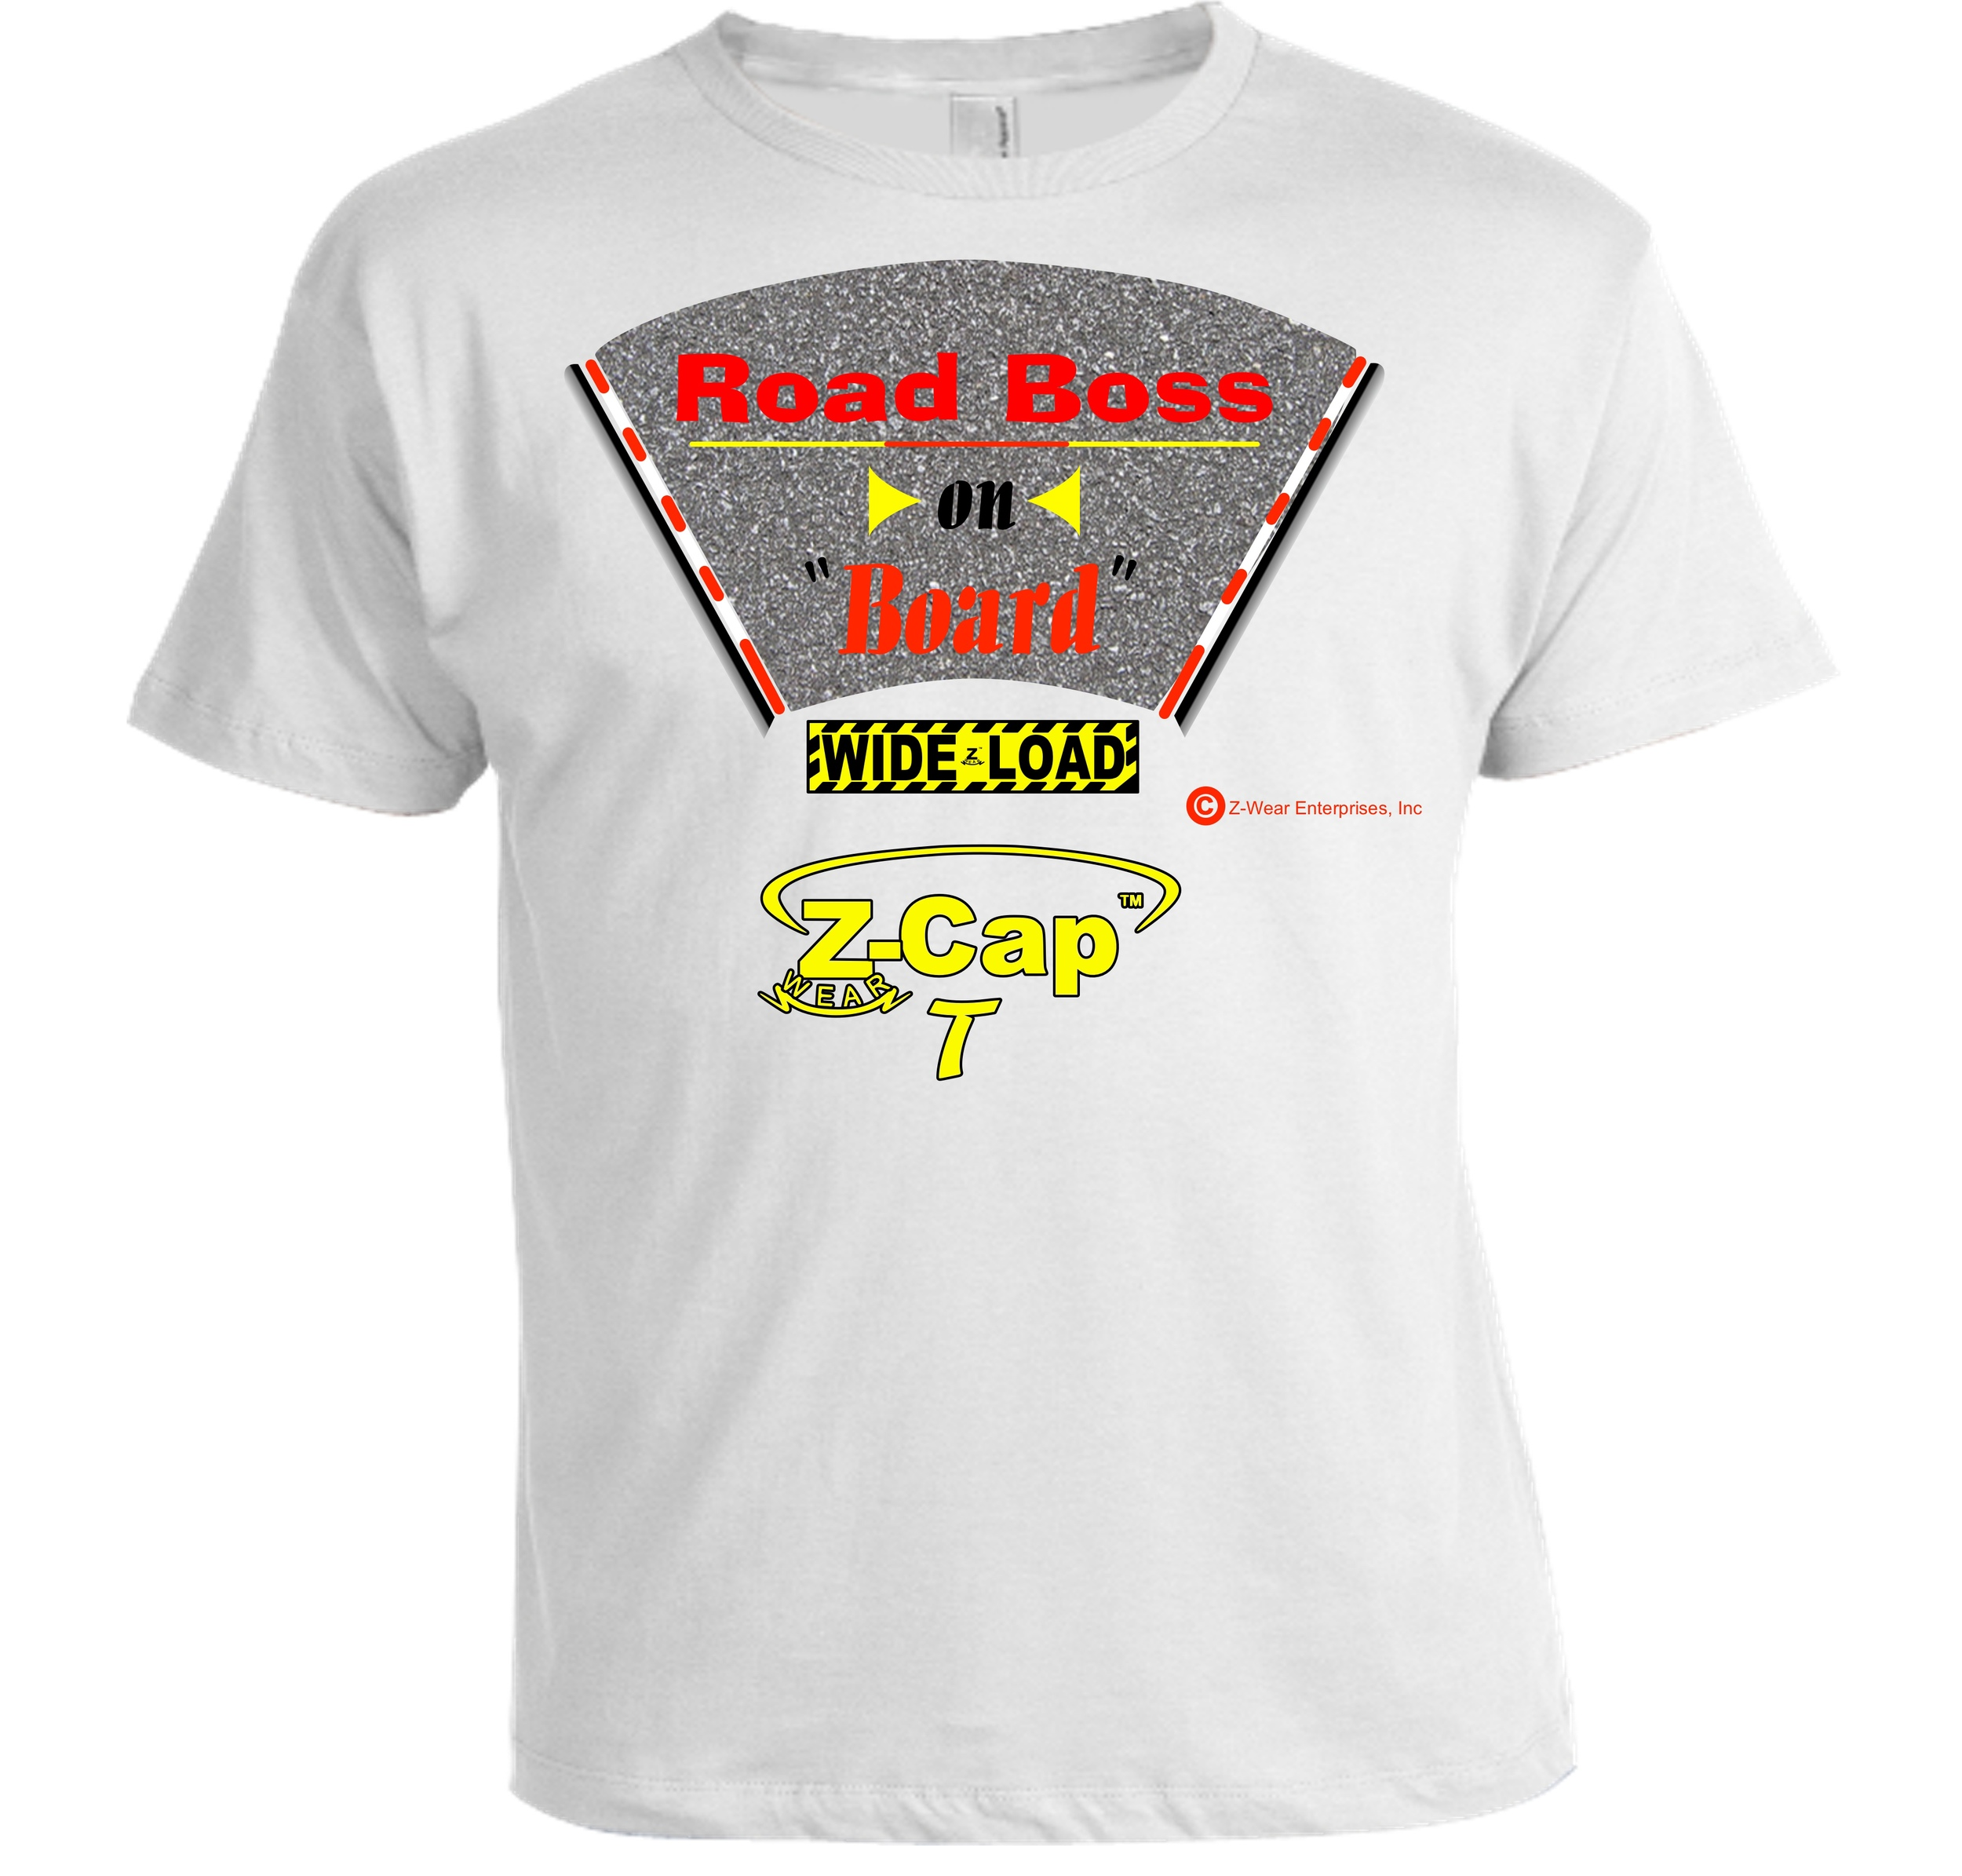 Wide Load RBOB red text Black.jpg